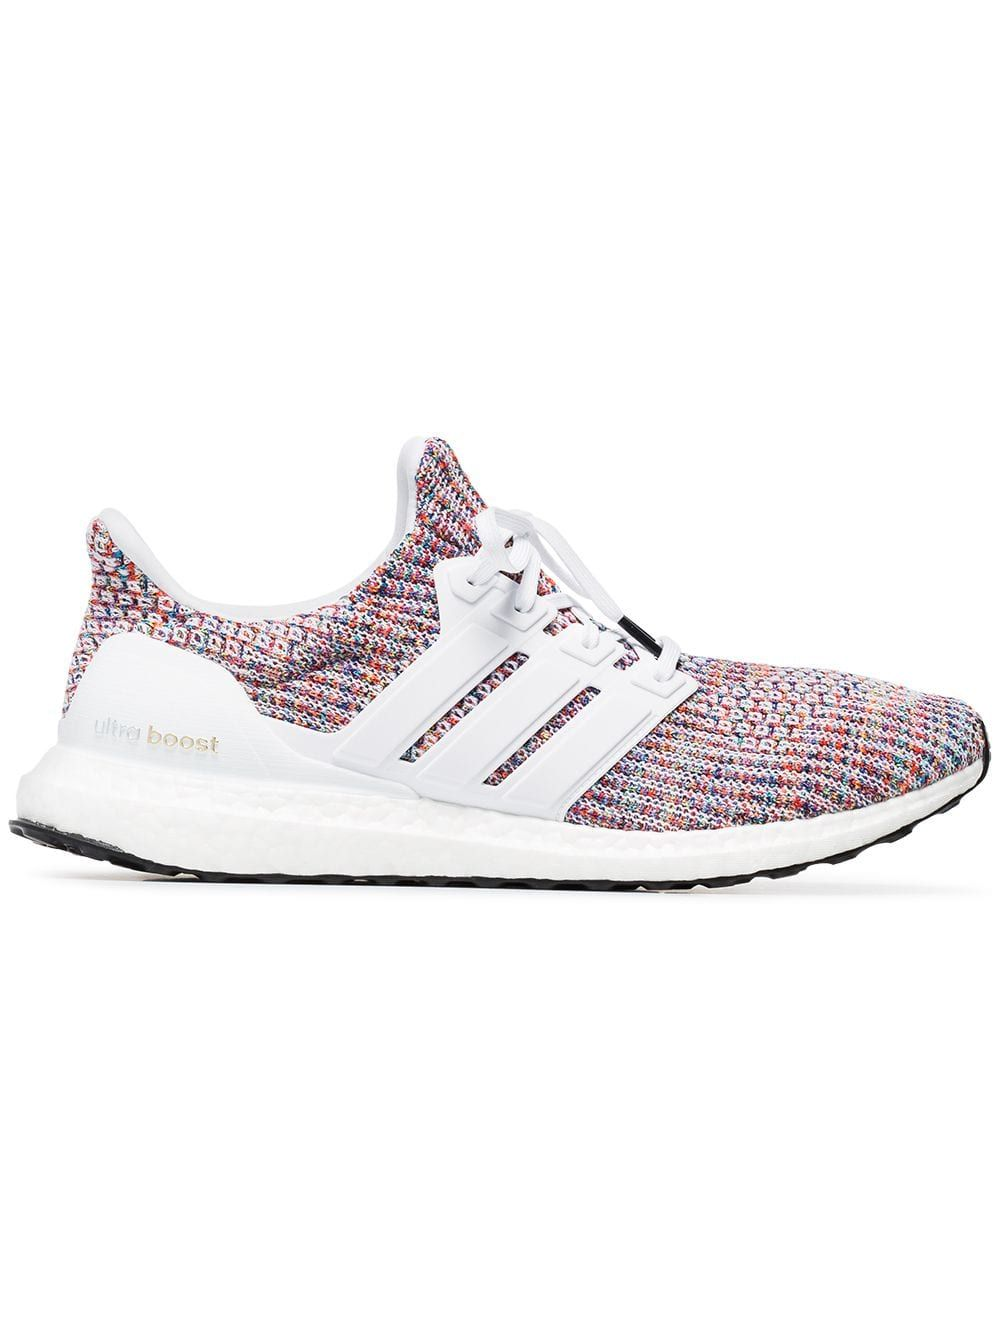 best cheap cd639 4fd83 ADIDAS ORIGINALS ADIDAS ADI ULTRABOOST SNKR RED WHT - MULTICOLOUR.   adidasoriginals  shoes